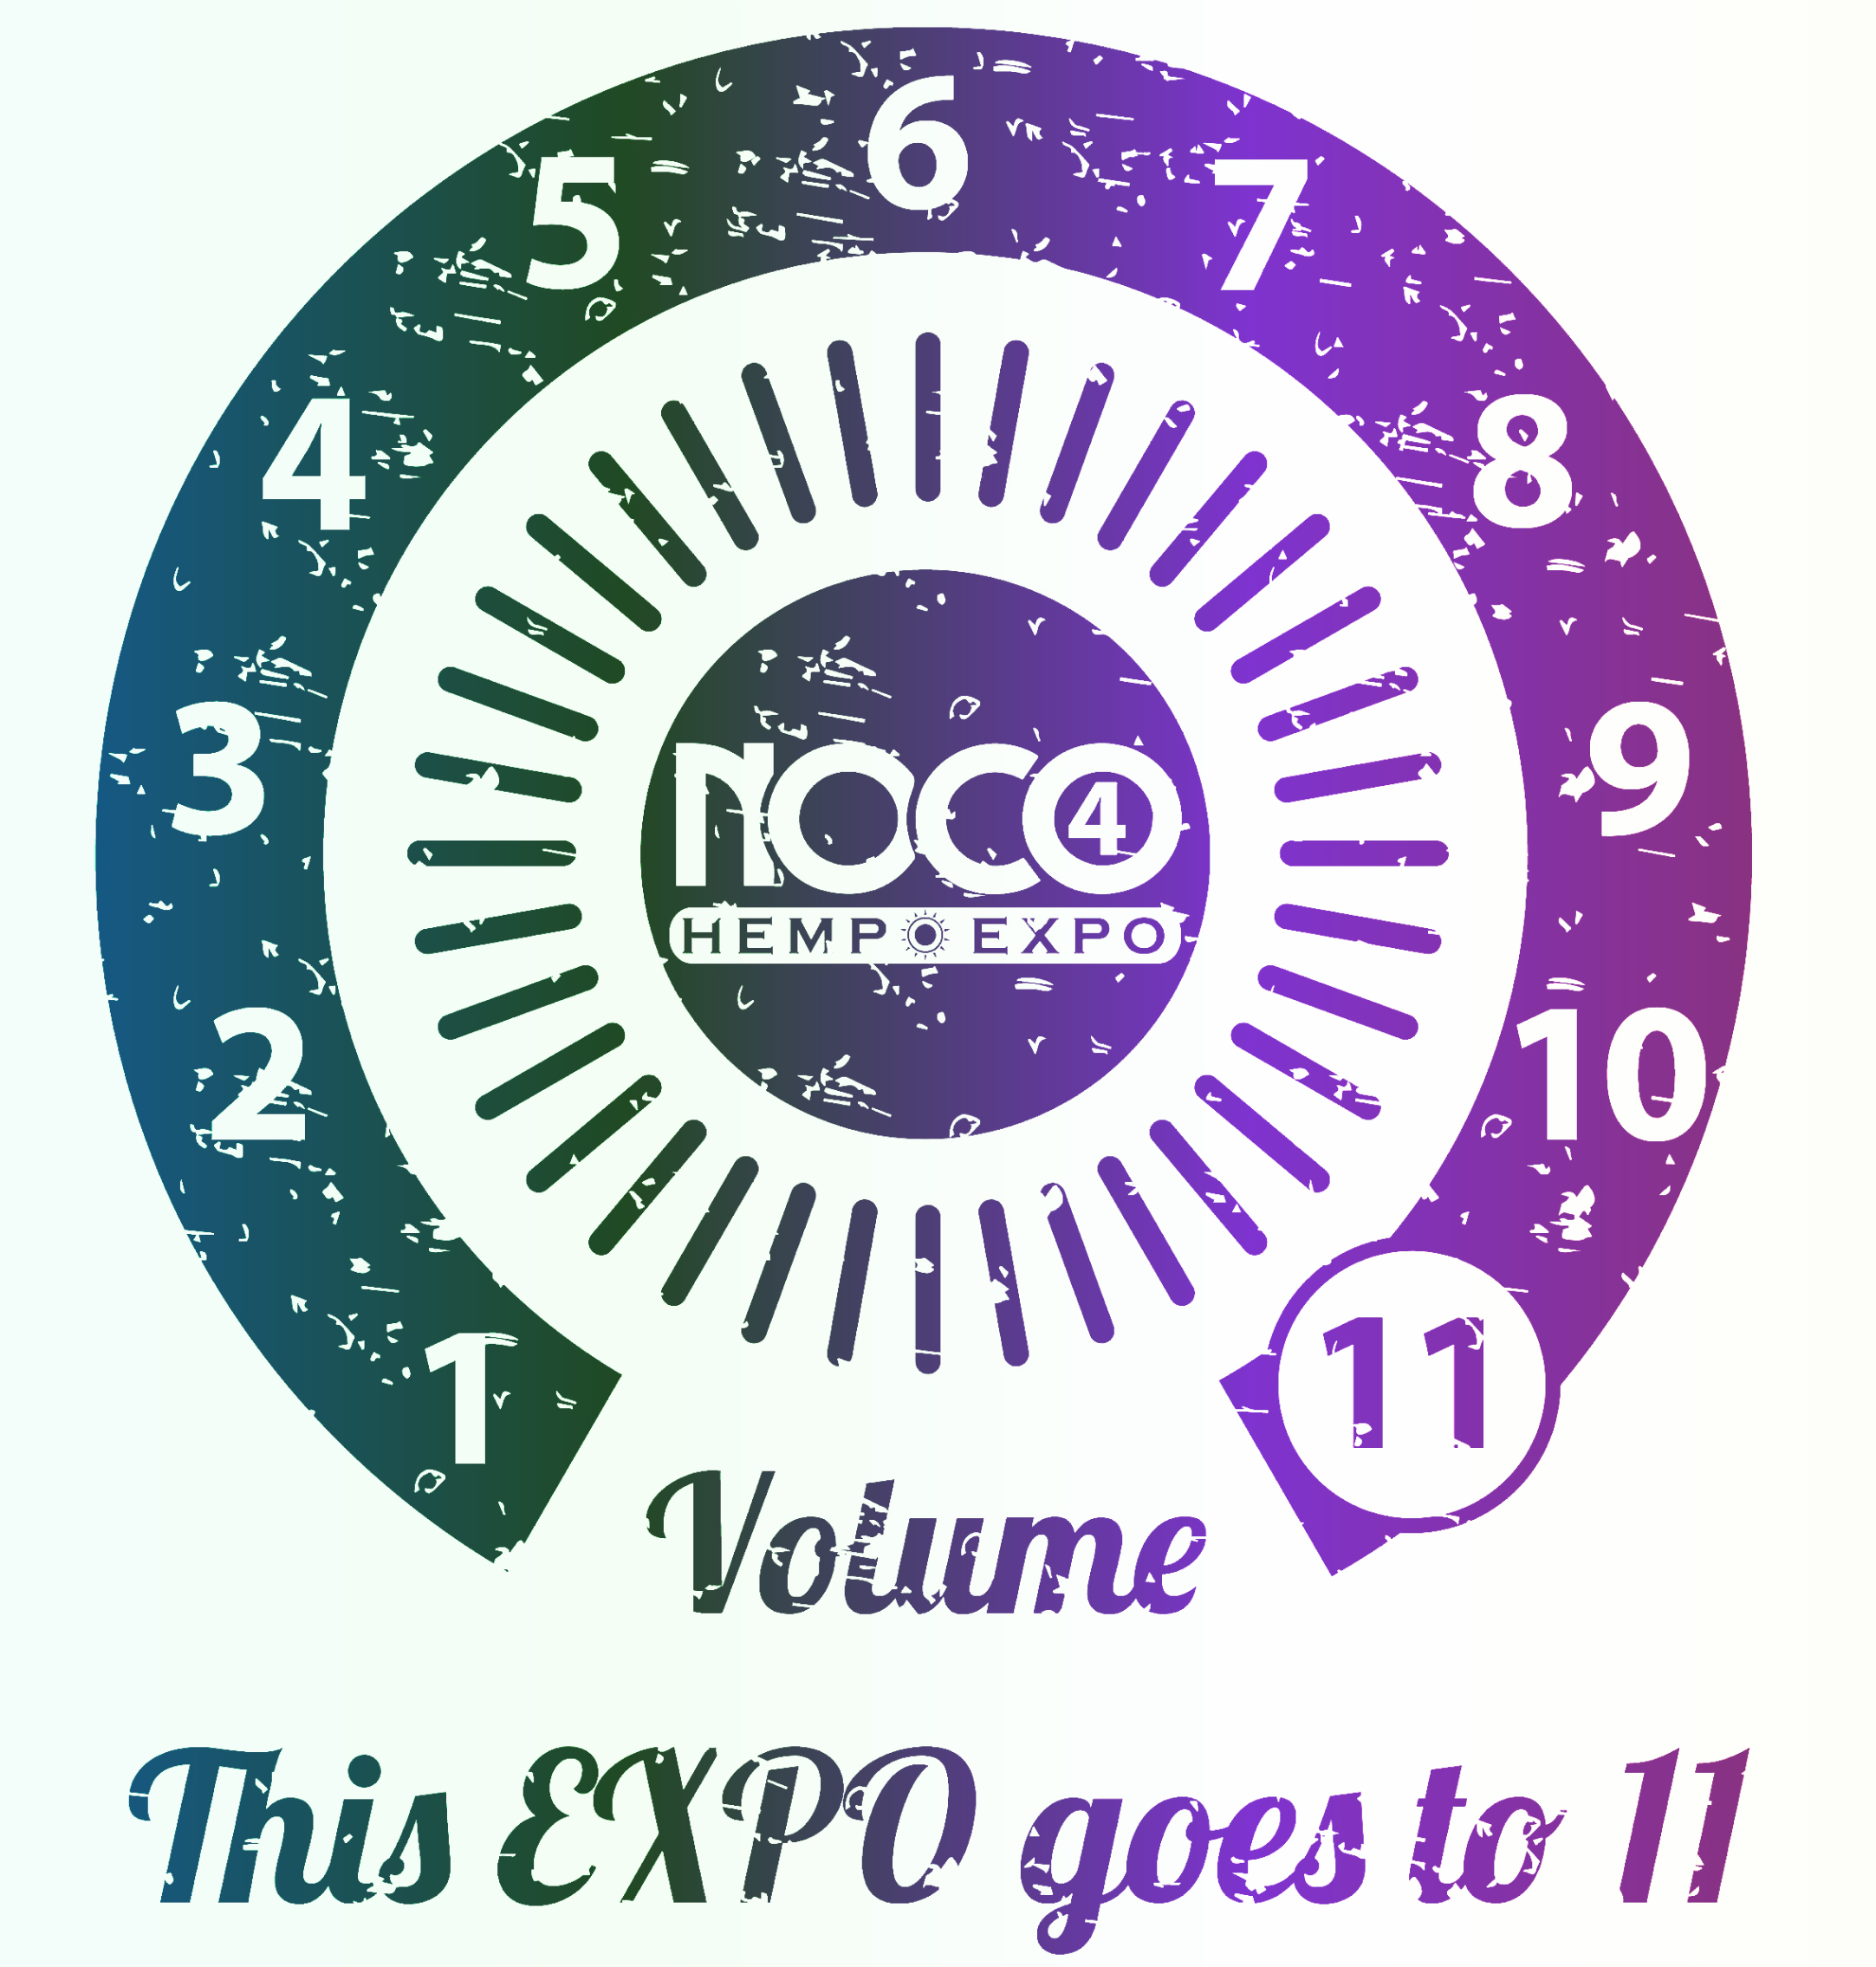 Expo goes to 11